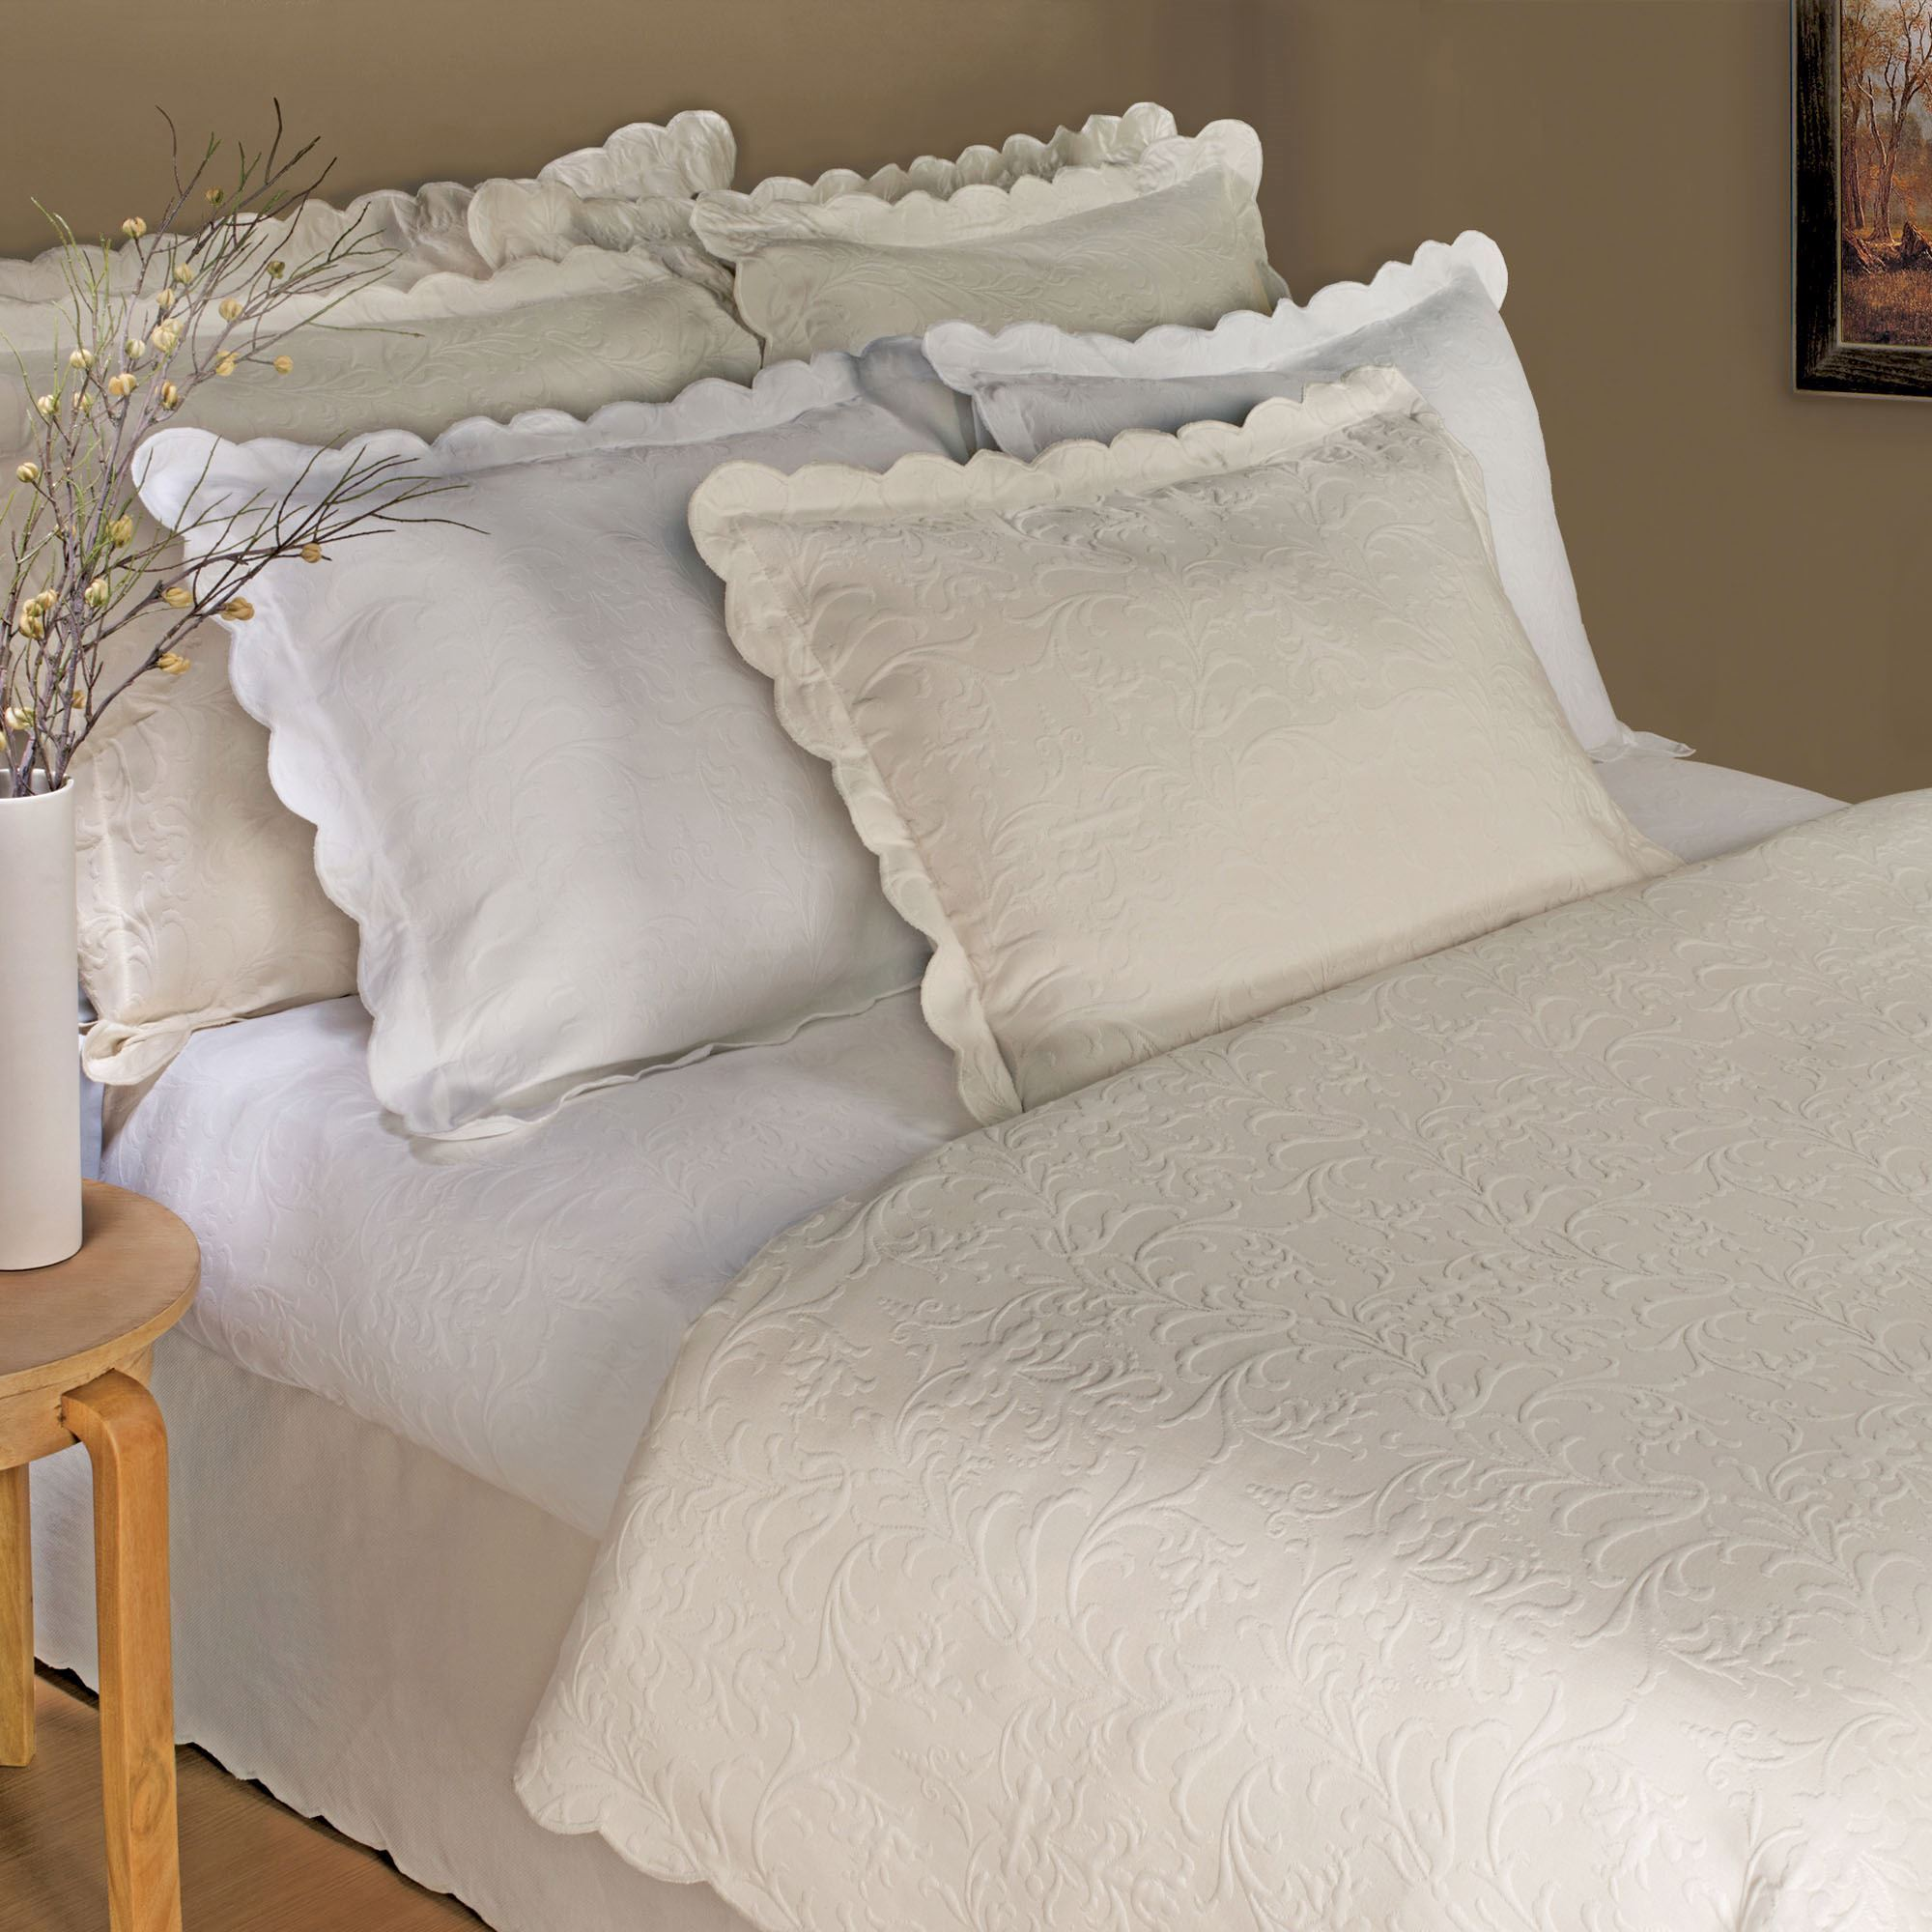 . majestic scalloped brocade matelasse coverlet bedding